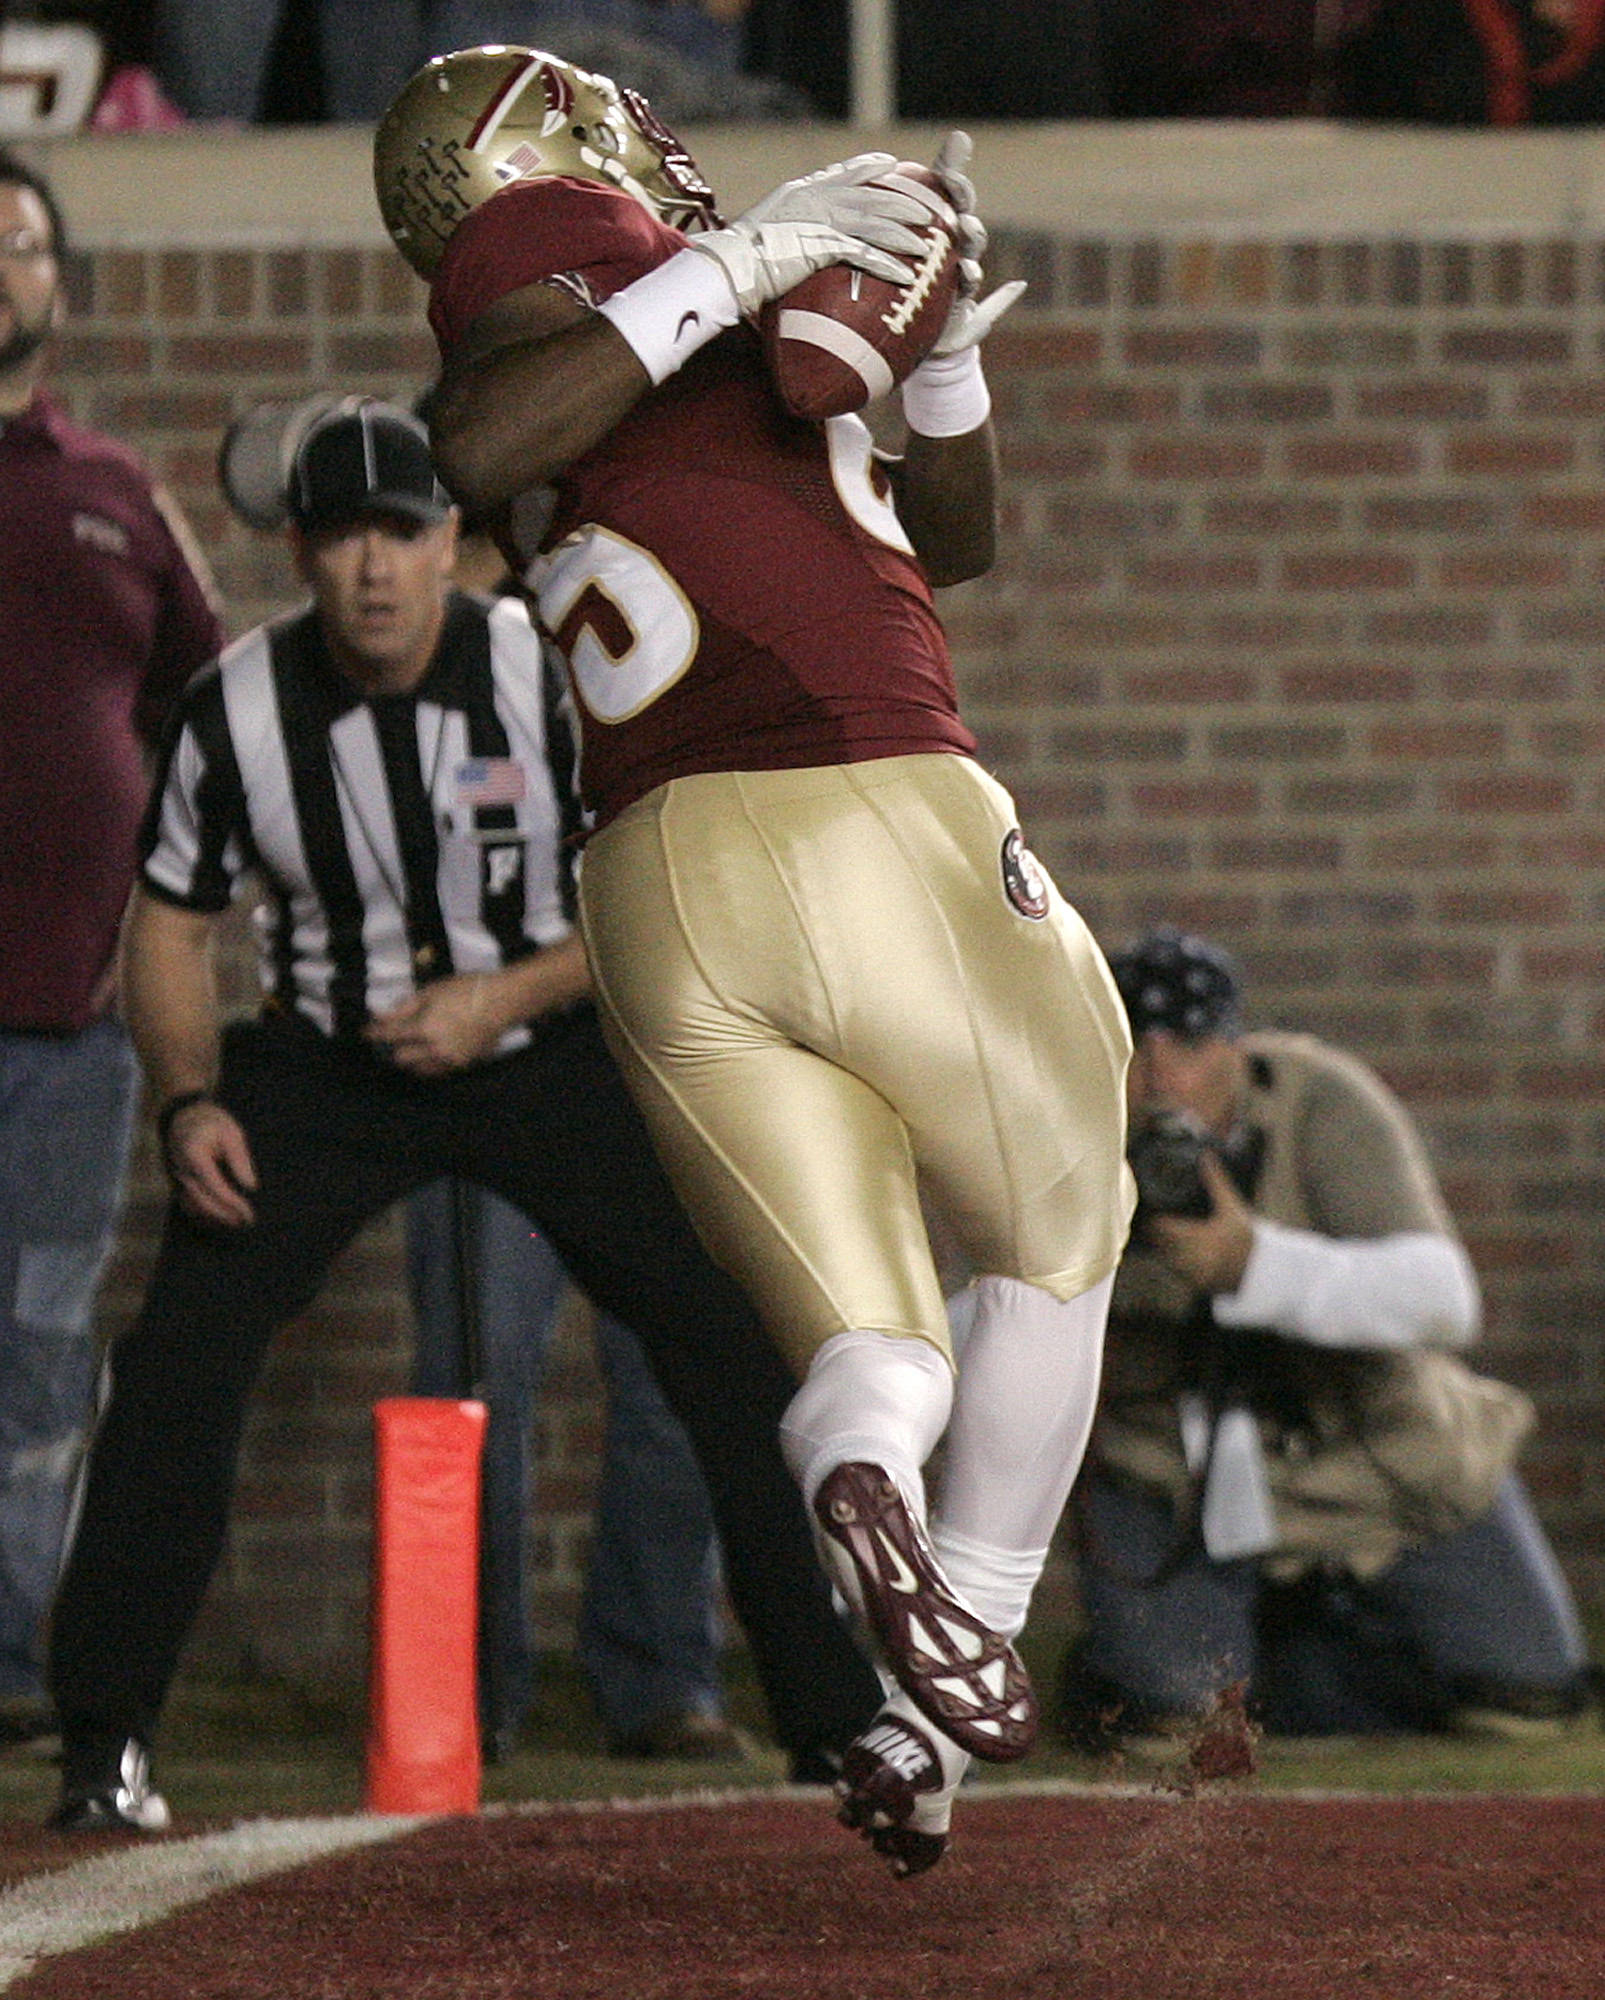 Florida State's JaBarris Little hangs on to an EJ Manuel pass to score against Virginia.(AP Photo/Steve Cannon)